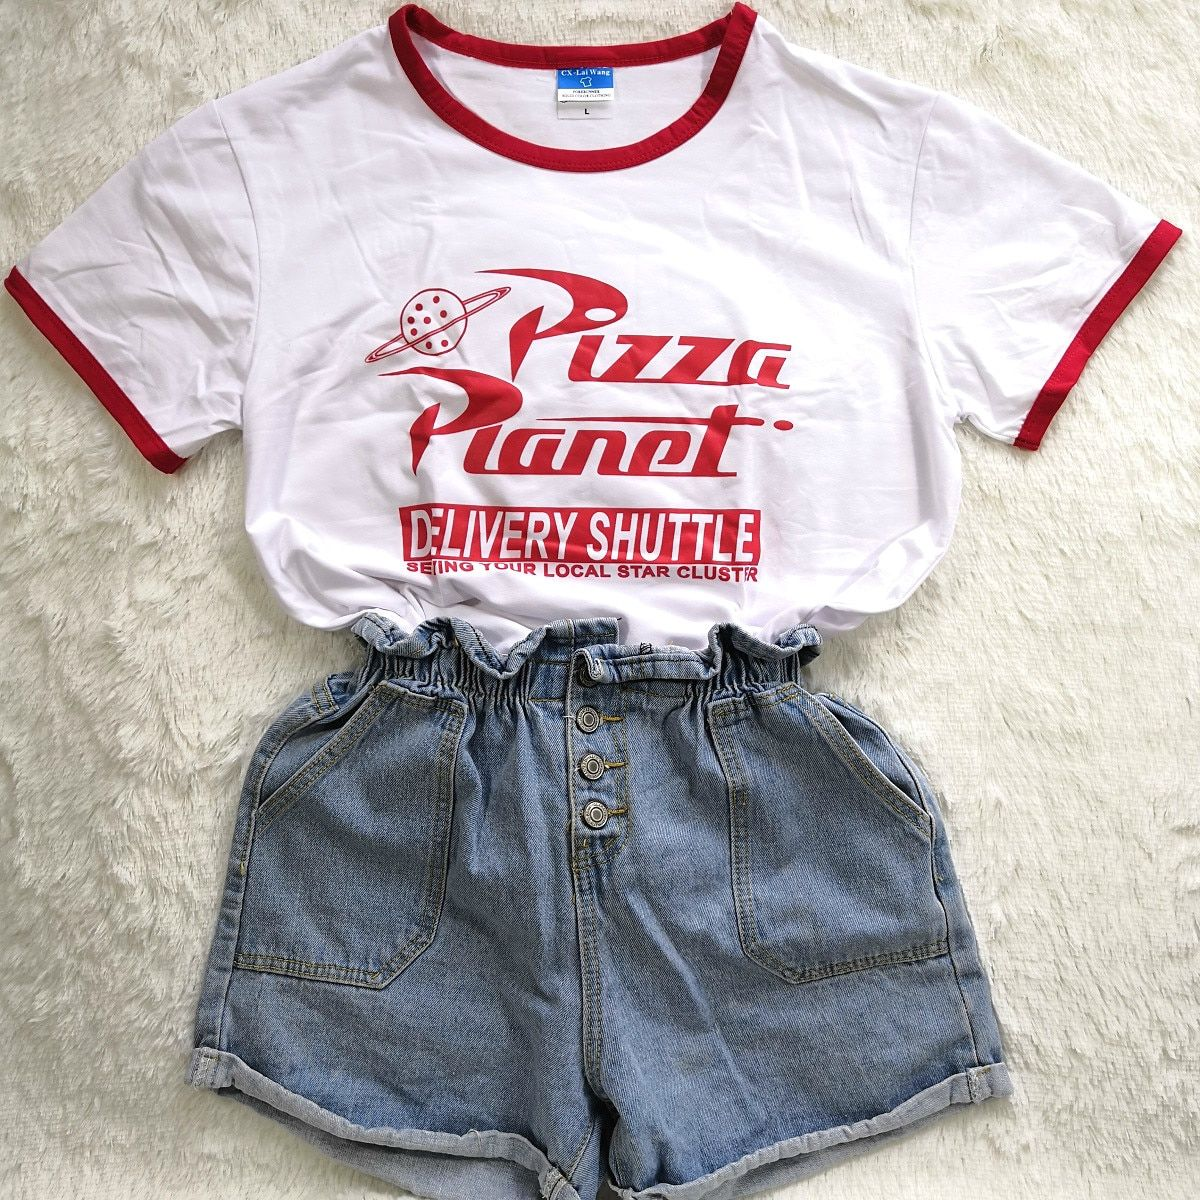 Hillbilly Funny Pizza Planet Humor Summer T shirt Red Edge Ladies Short Sleeved Loose Plus Size Casual Top O-neck Hipster Tumblr